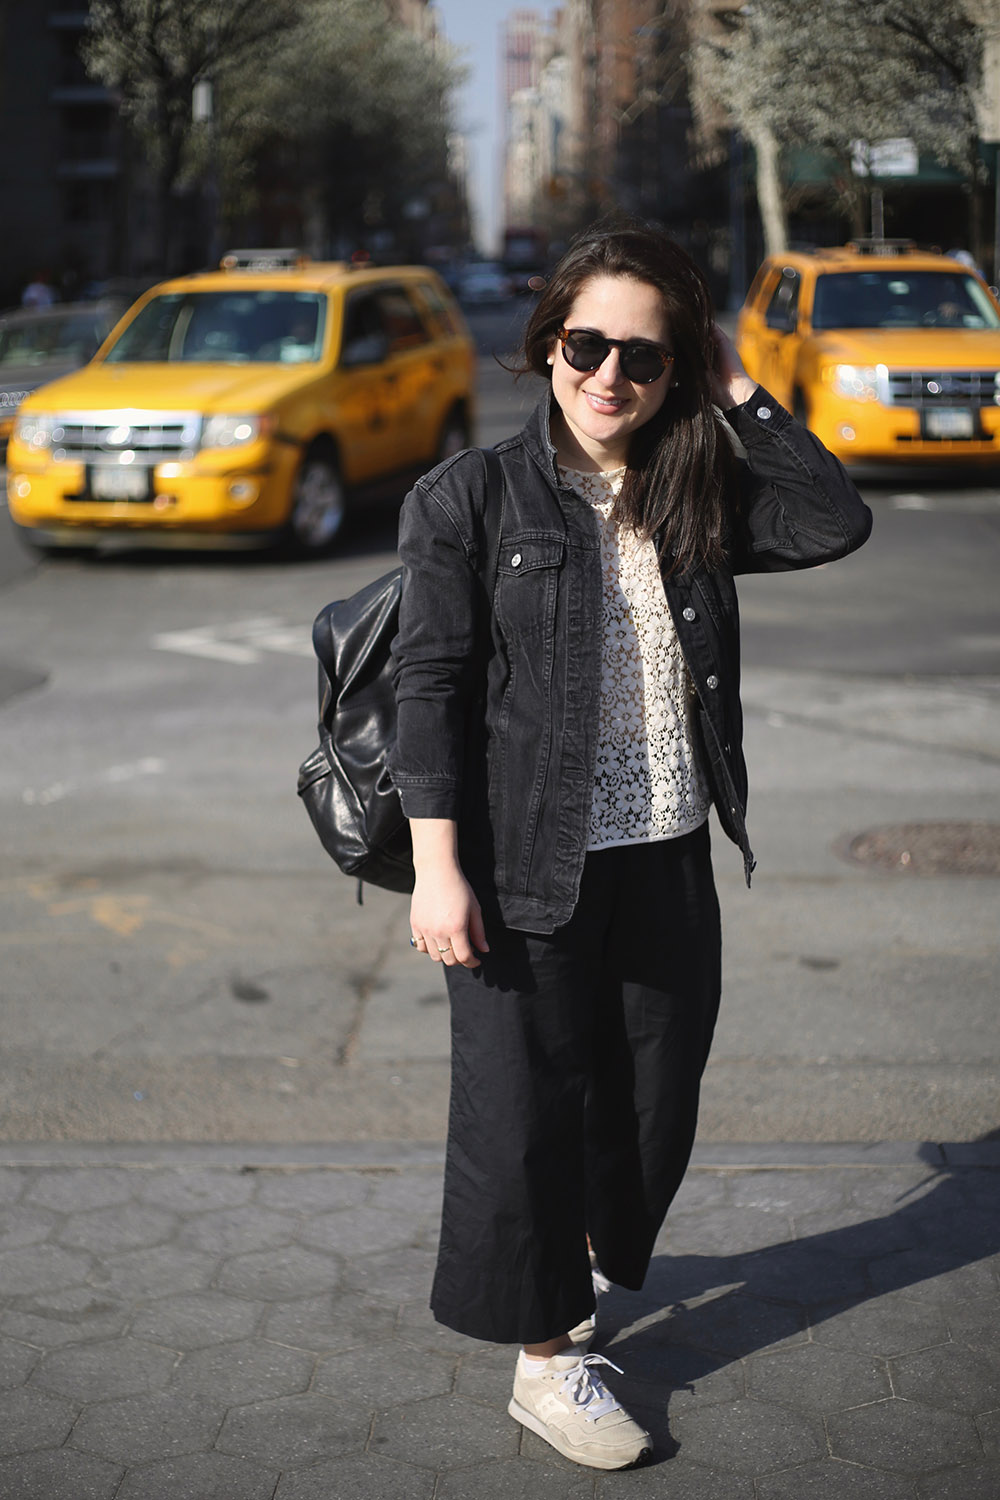 NYC-Street-Style-How-To-Style-Casual-Lace-Melina-Peterson-5thfloorwalkup.com.jpg